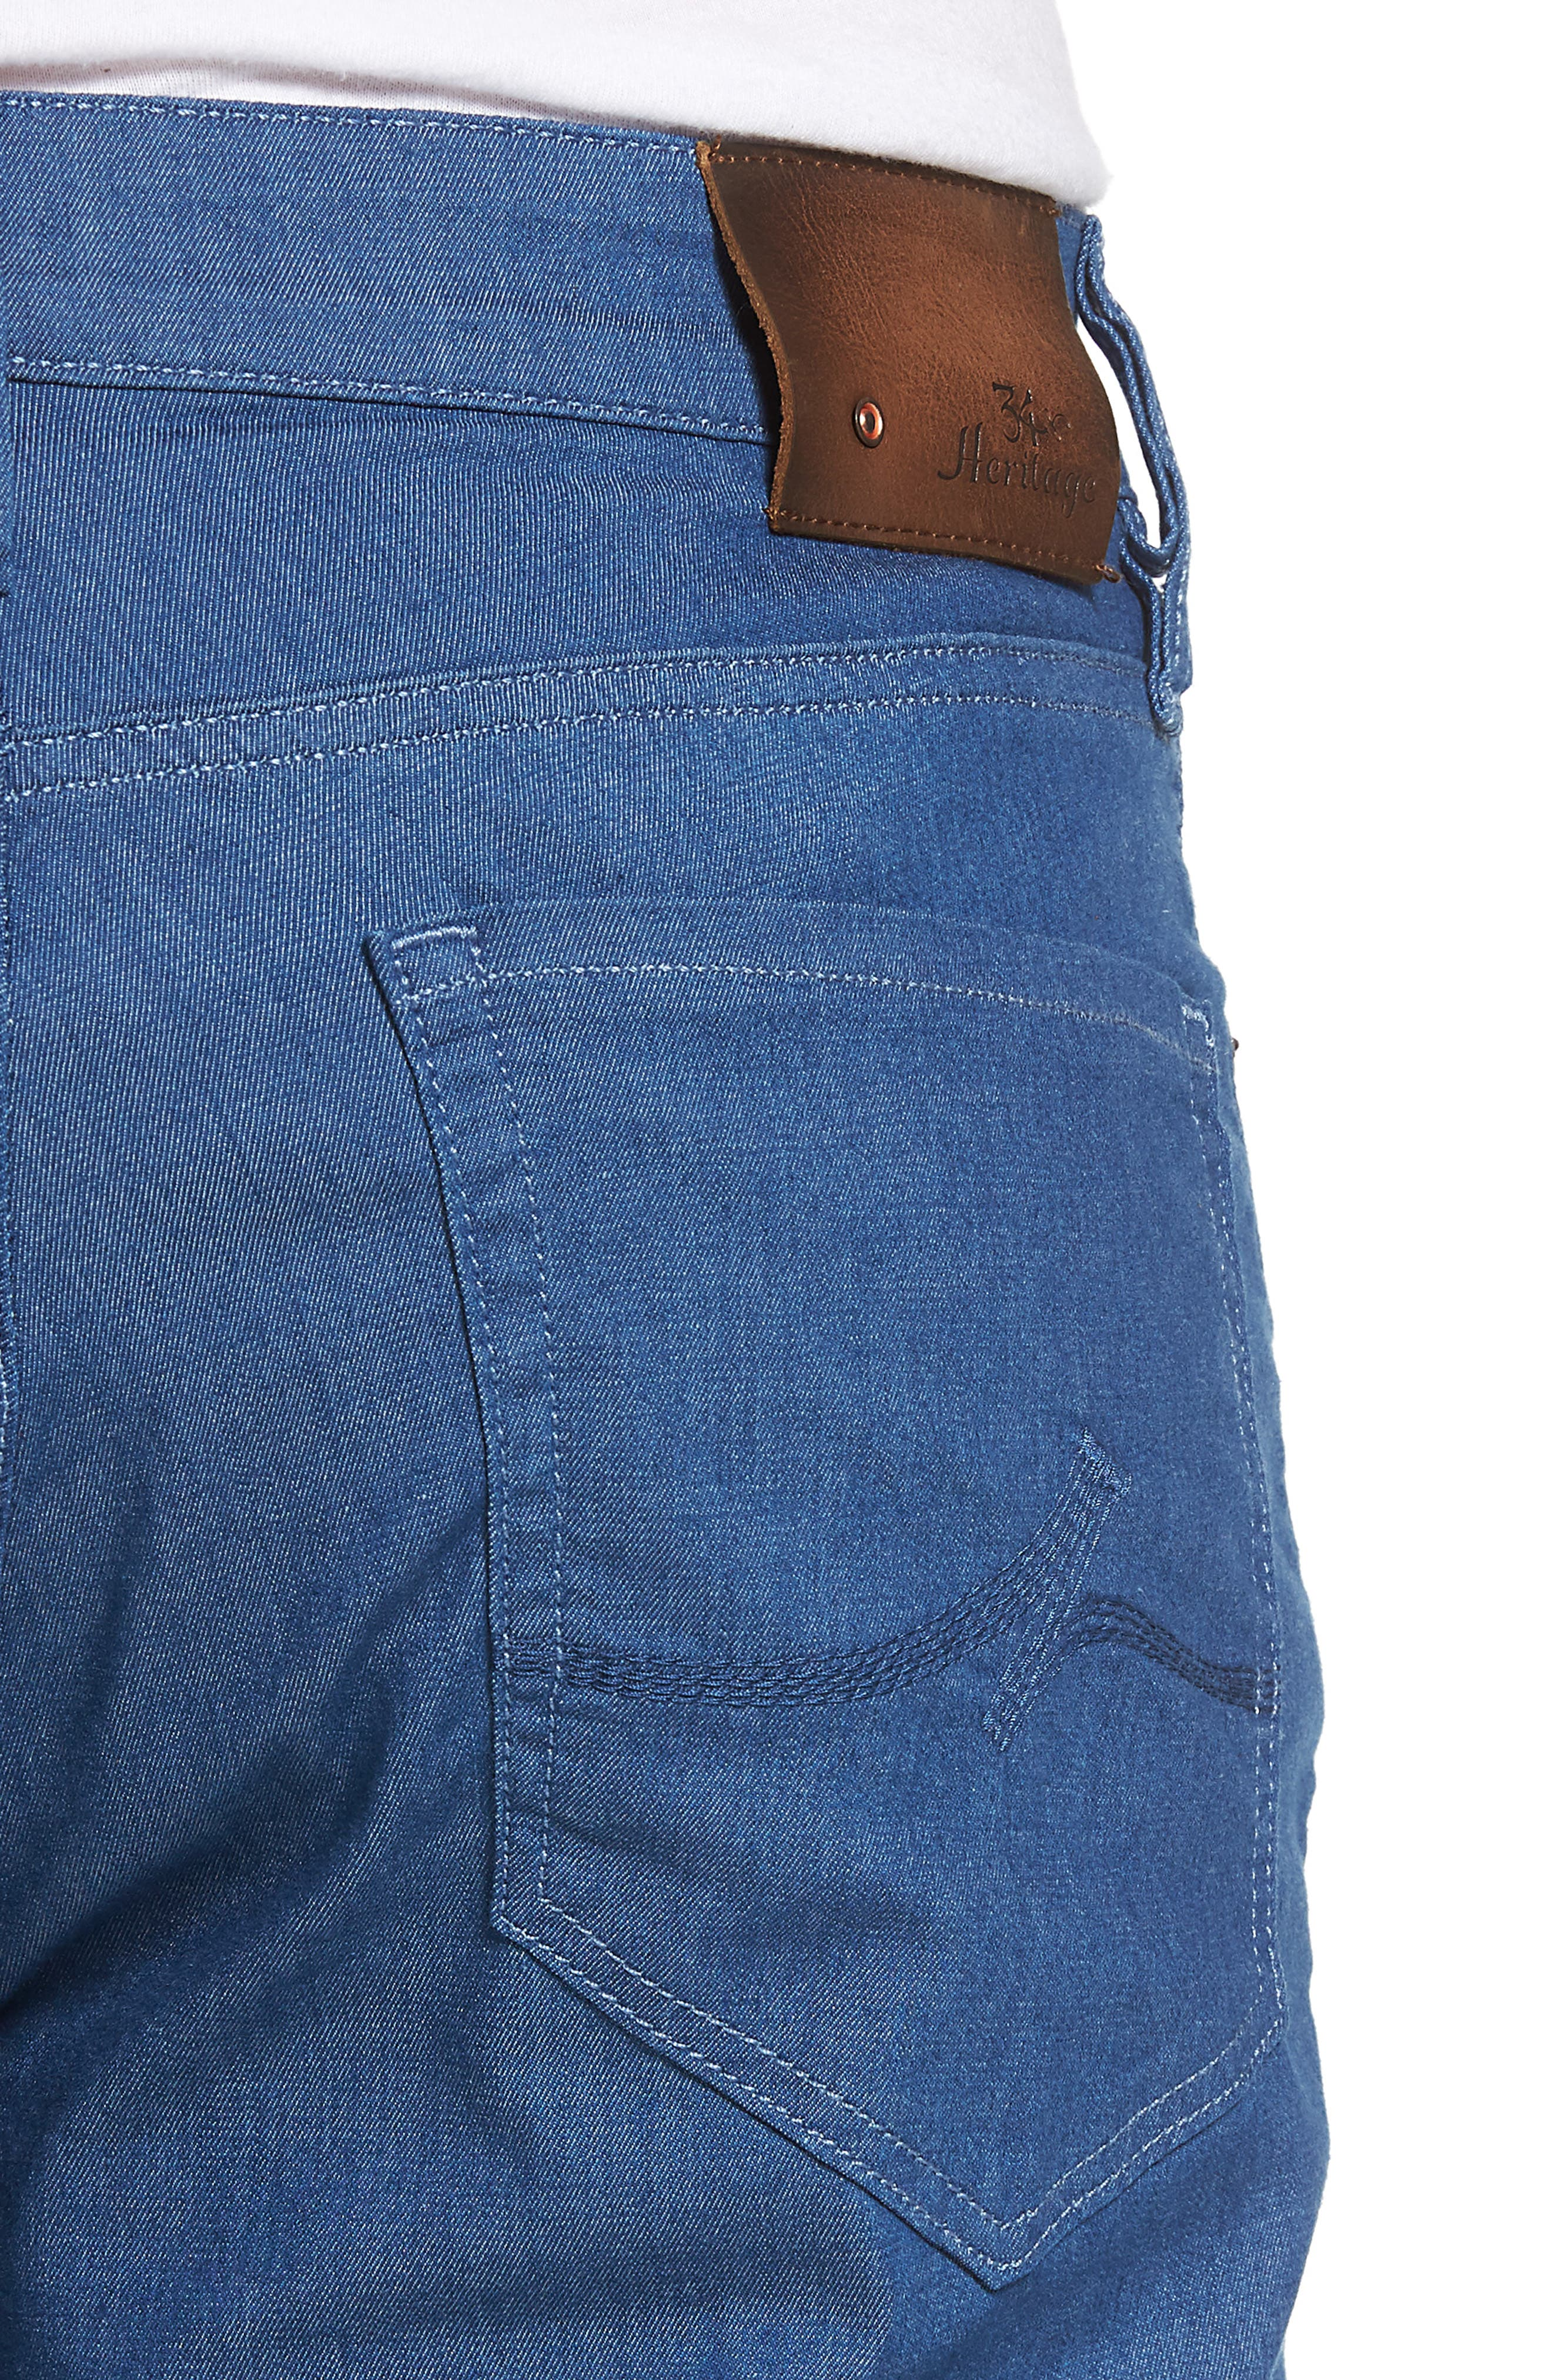 Charisma Relaxed Fit Jeans,                             Alternate thumbnail 4, color,                             420